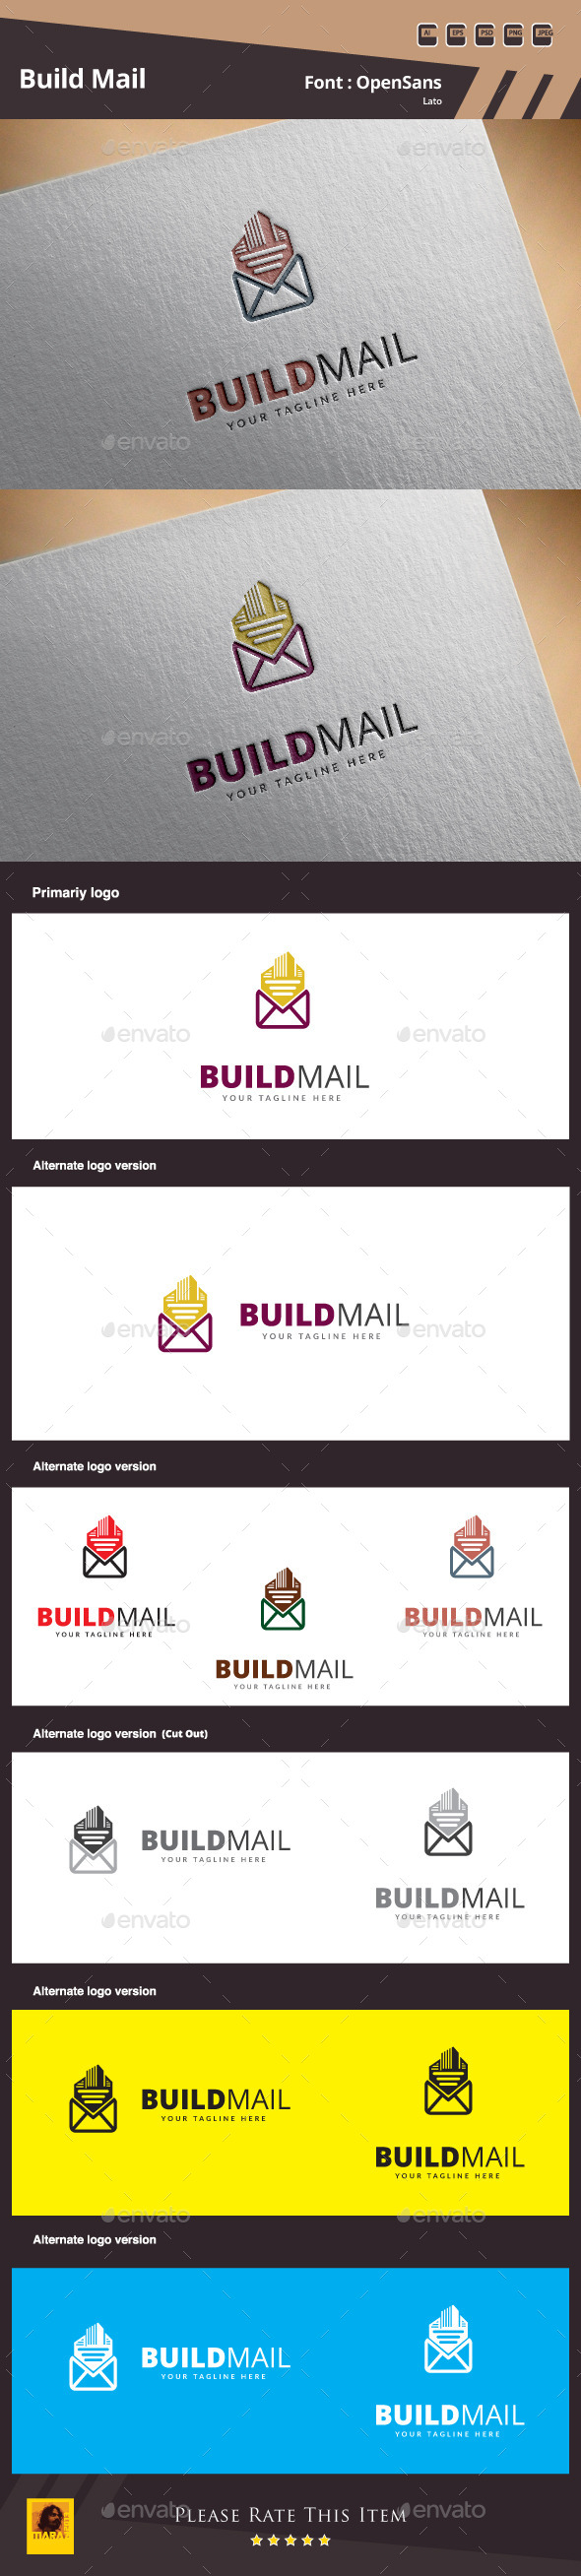 Build Mail Logo Template - Buildings Logo Templates